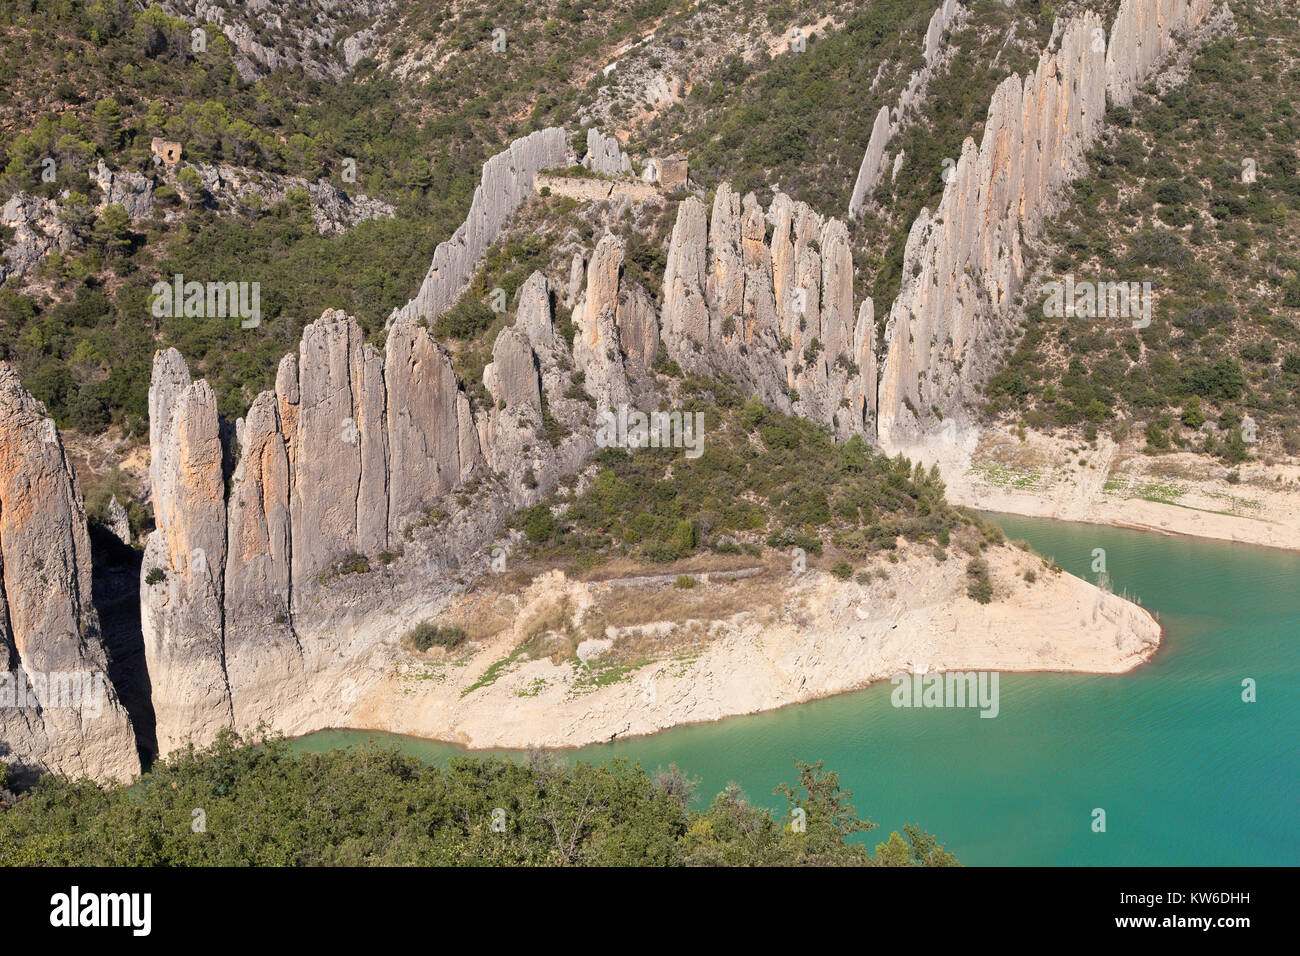 Finestres Wall and Hermitage of San Vicente, Huesca province, Aragon, Spain. - Stock Image